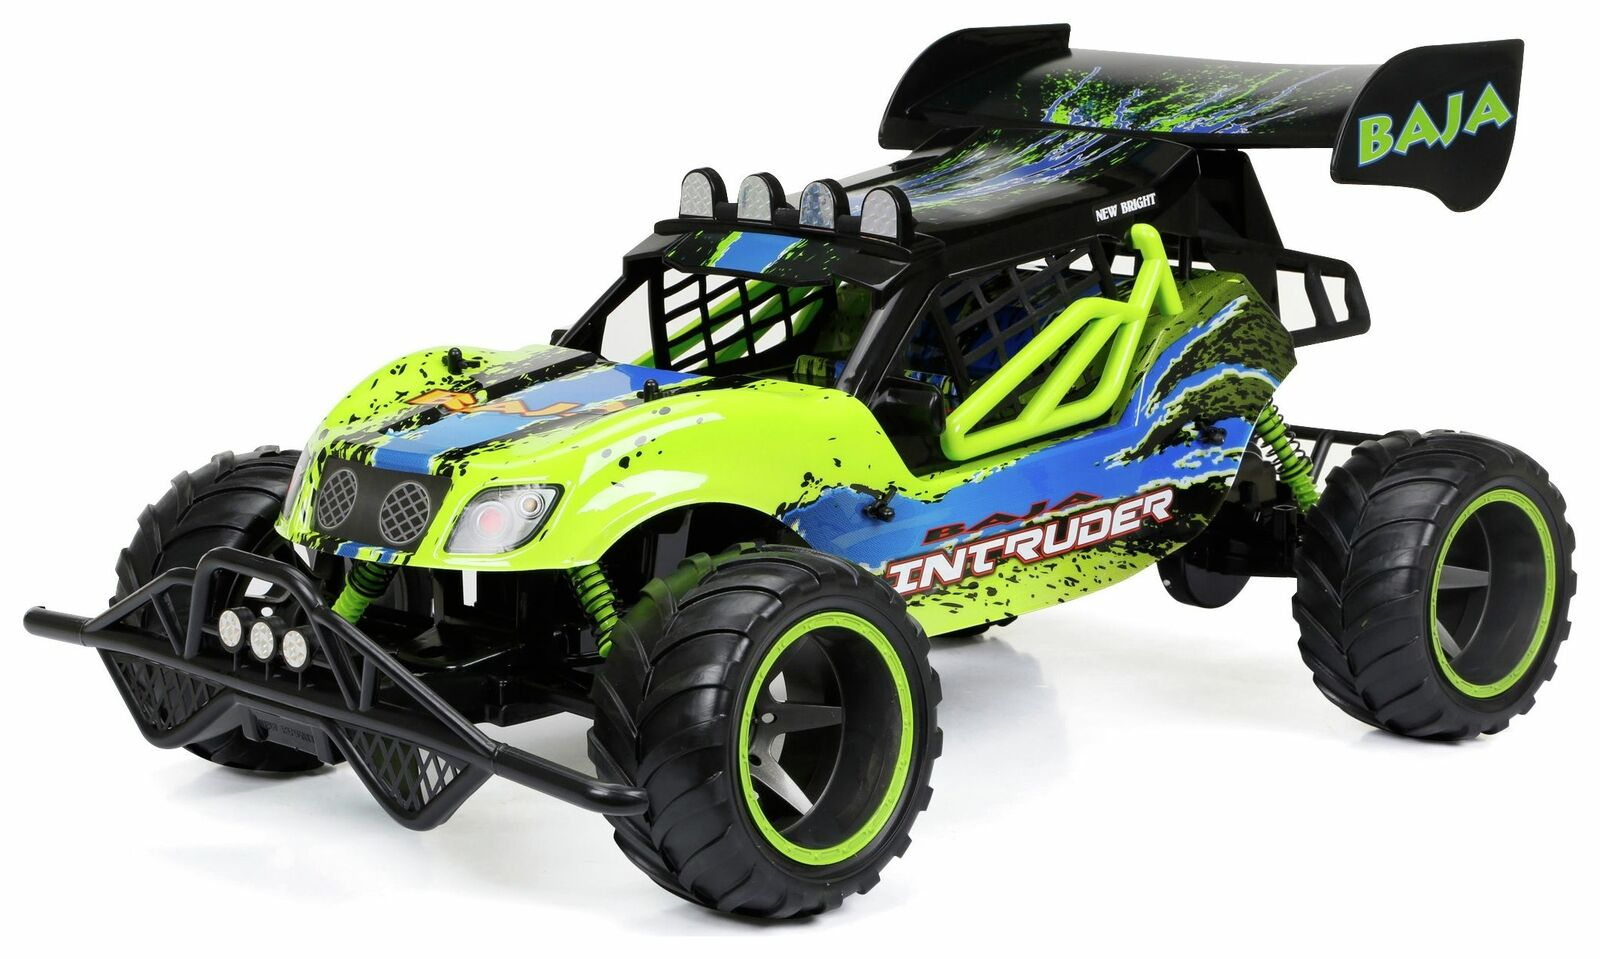 New Bright Intruder 60cm Radio Controlled Car Indoor Outdoor.